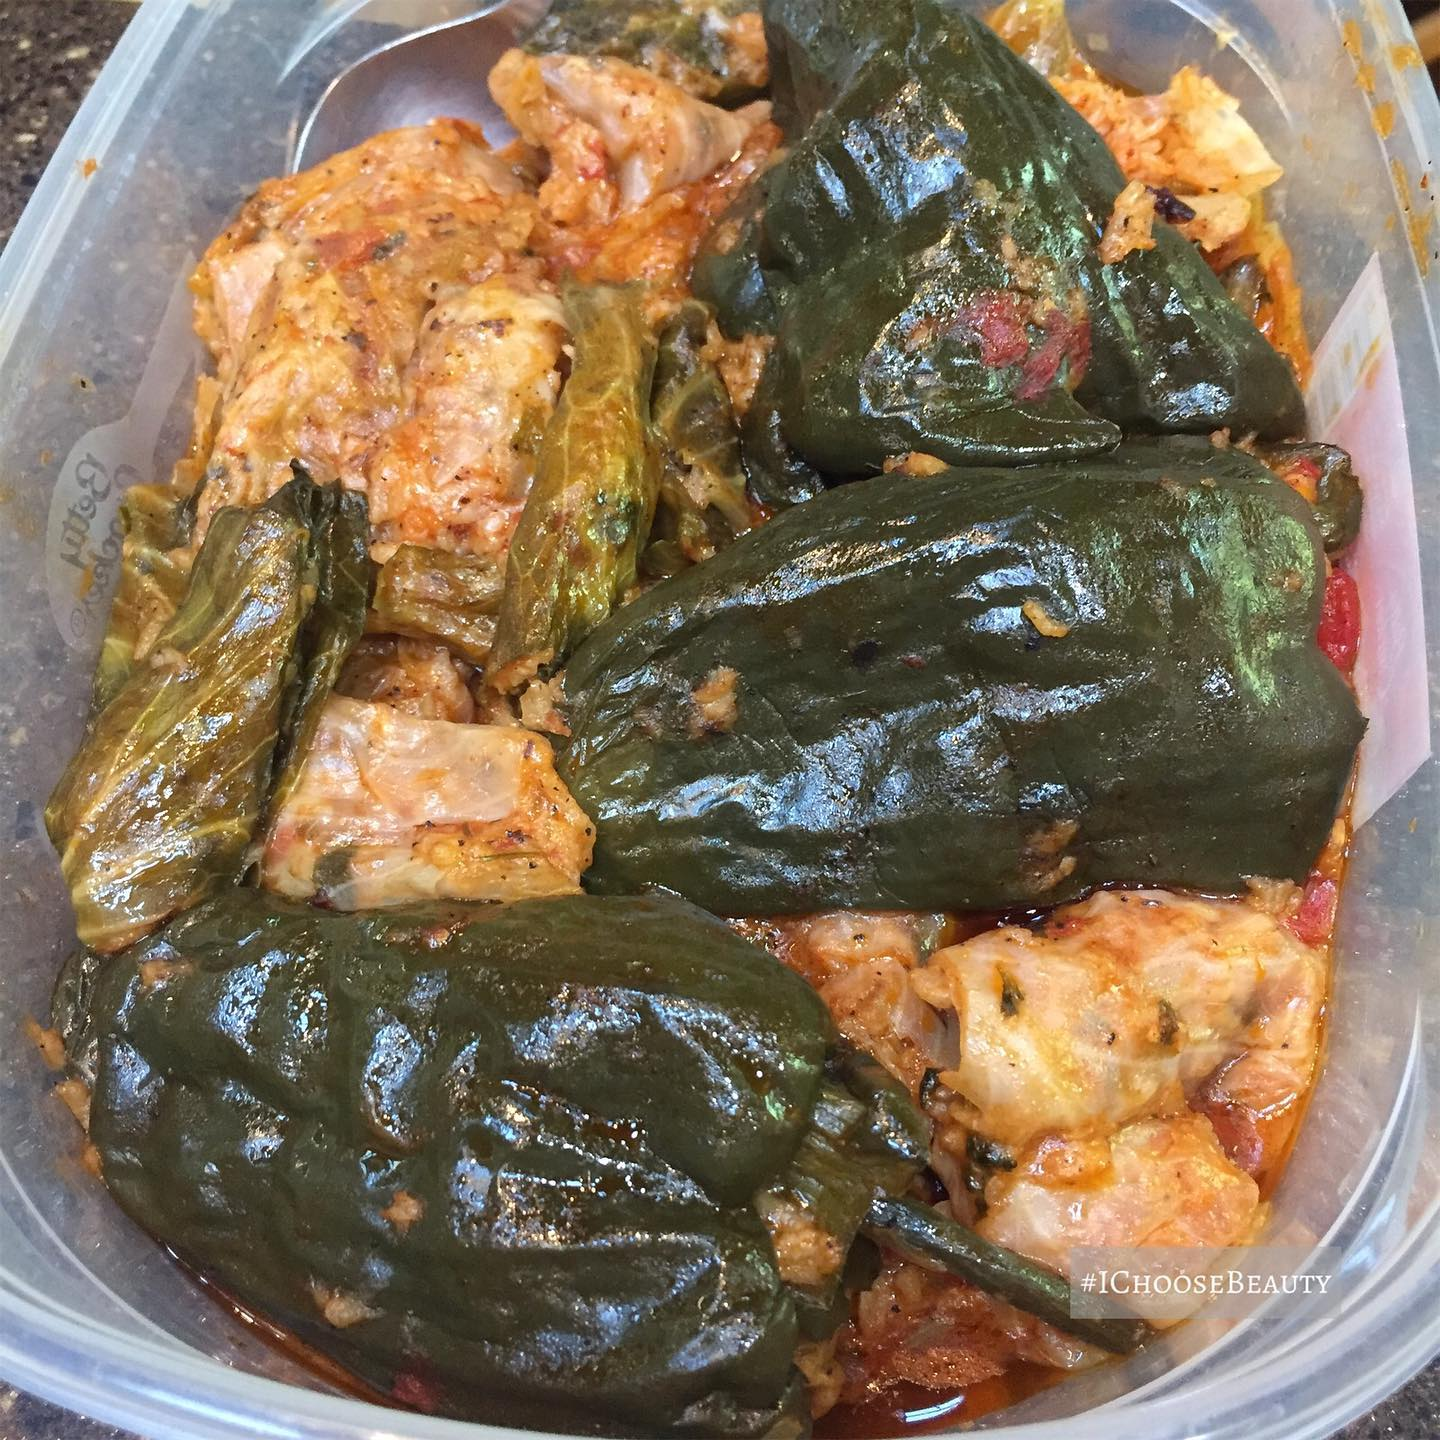 My dad's Egyptian friend made us a delicious traditional Egyptian dinner tonight - stuffed cabbage and stuffed peppers. My stomach and heart are so happy. ️️ Also, swipe to see the container he brought the food in.  #ichoosebeauty Day 2760